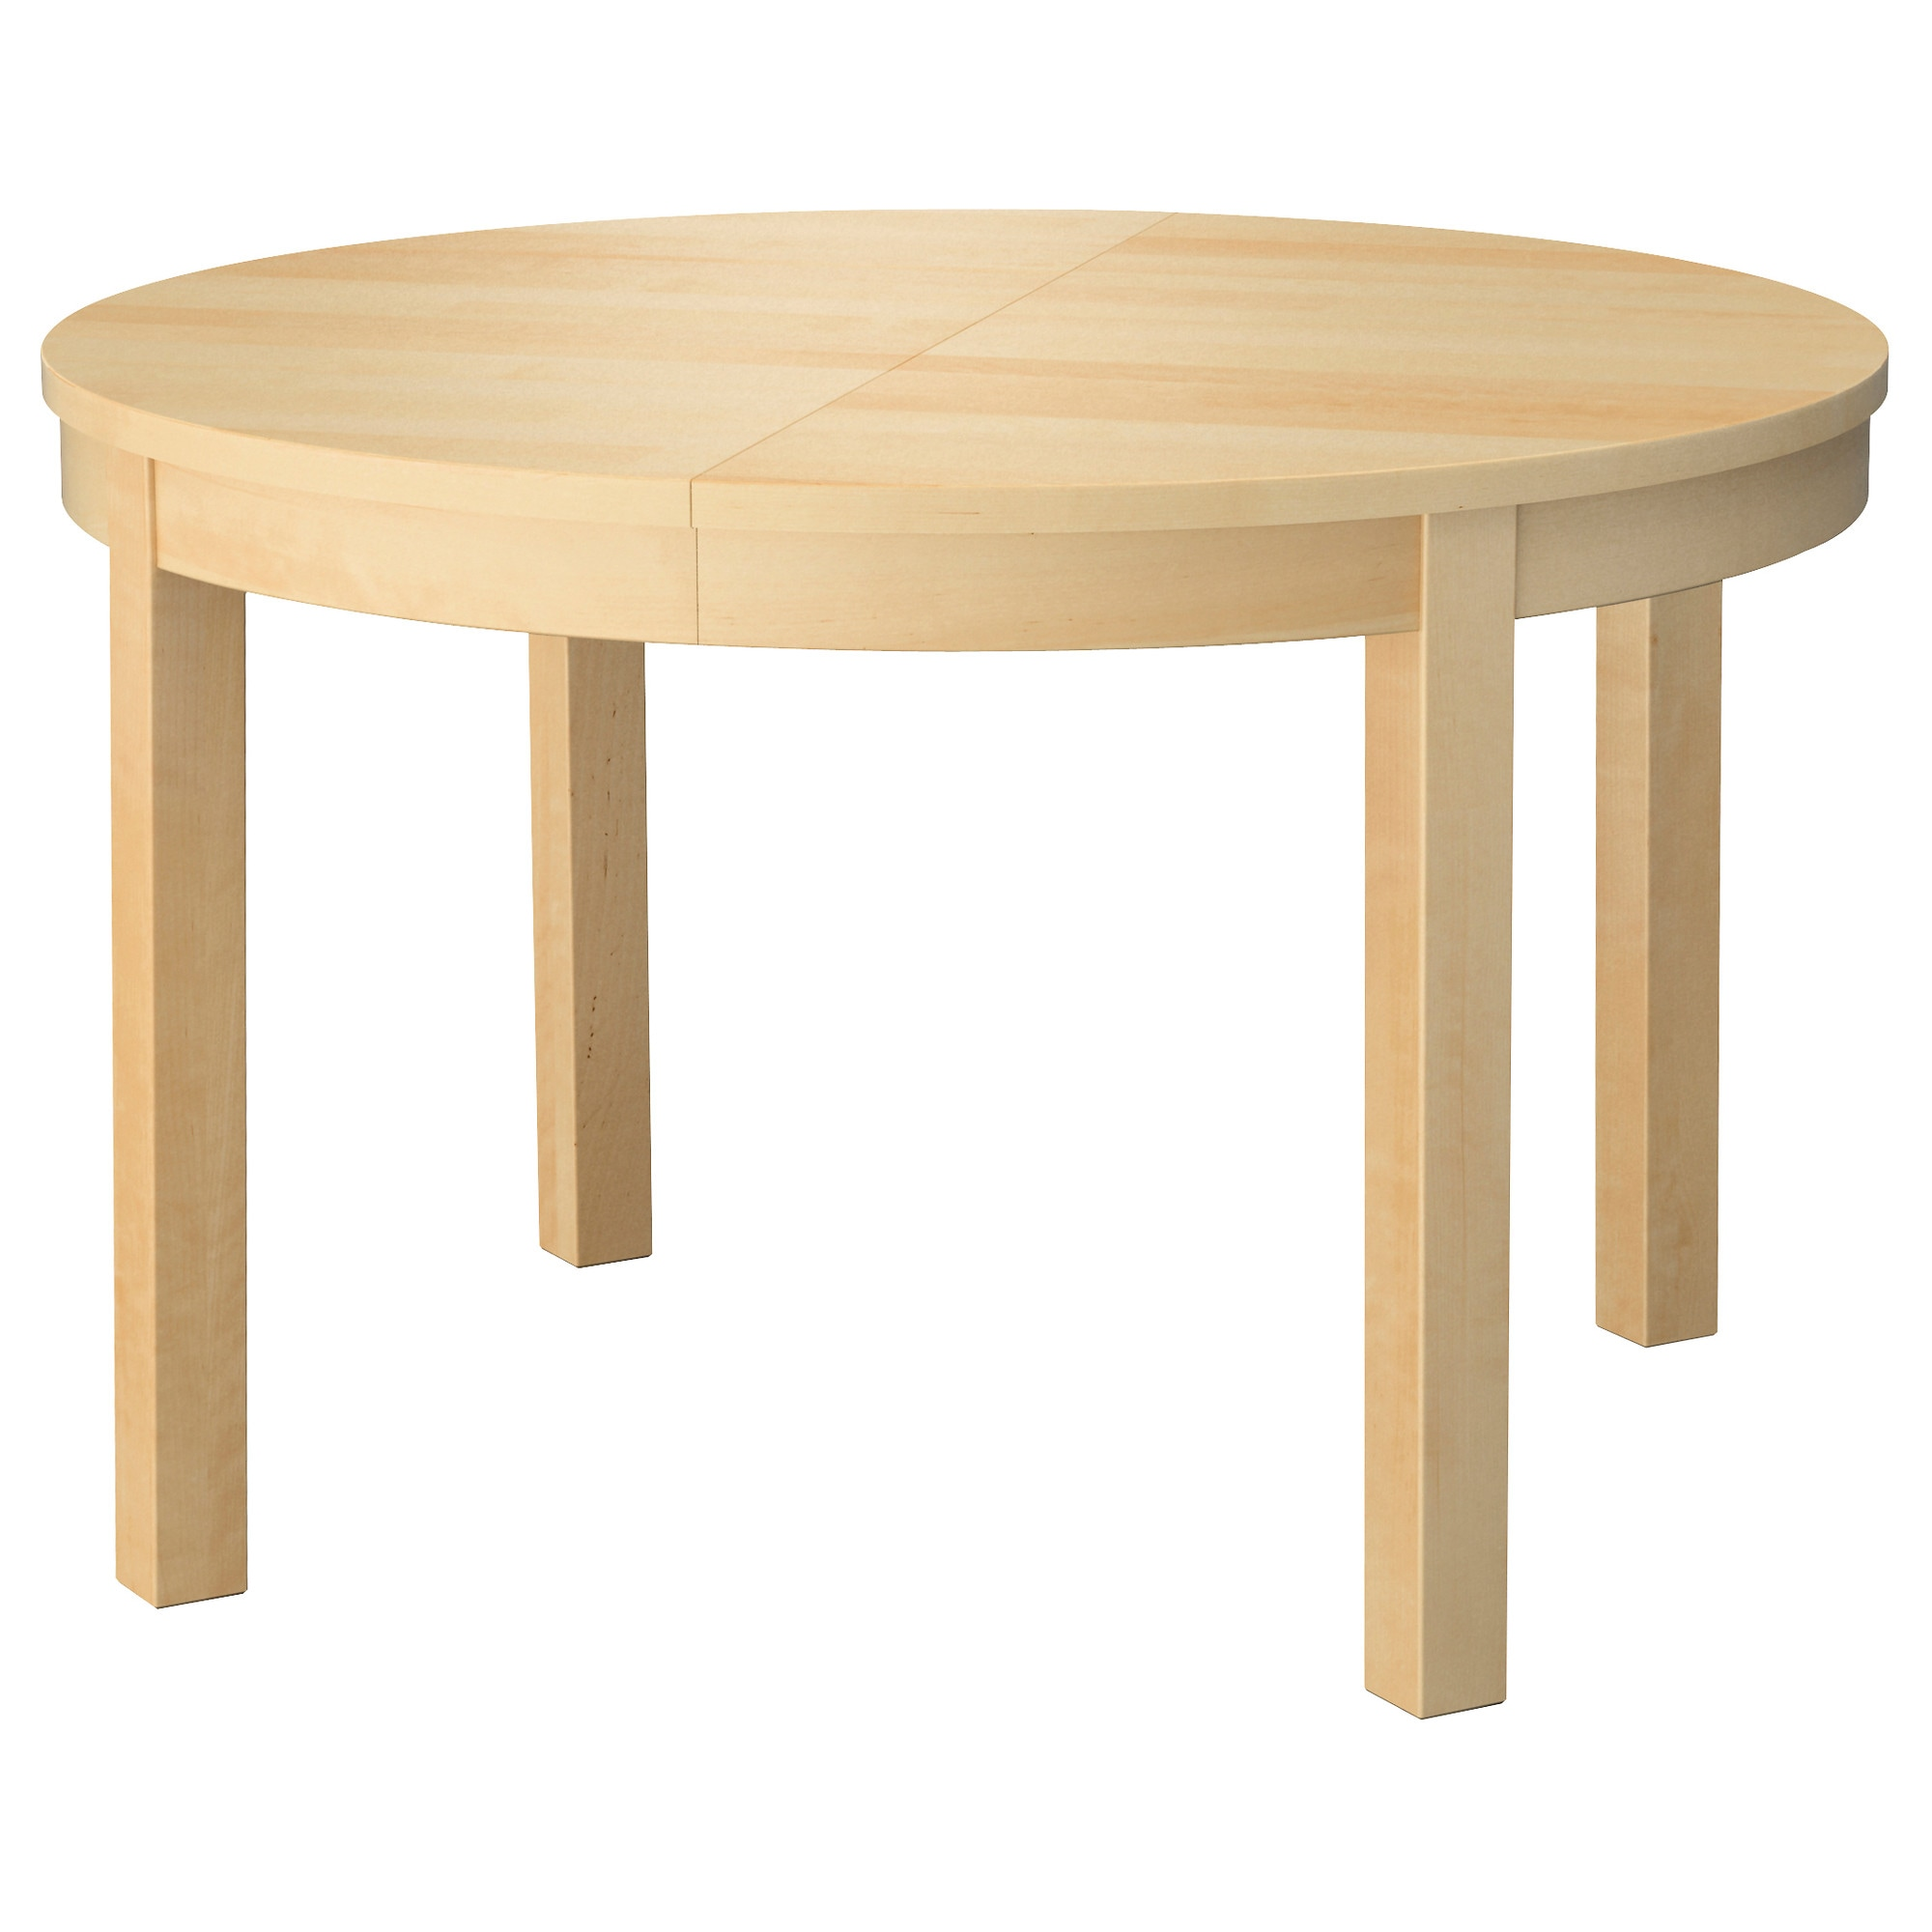 Table ronde ikea - Table ronde en verre ikea ...